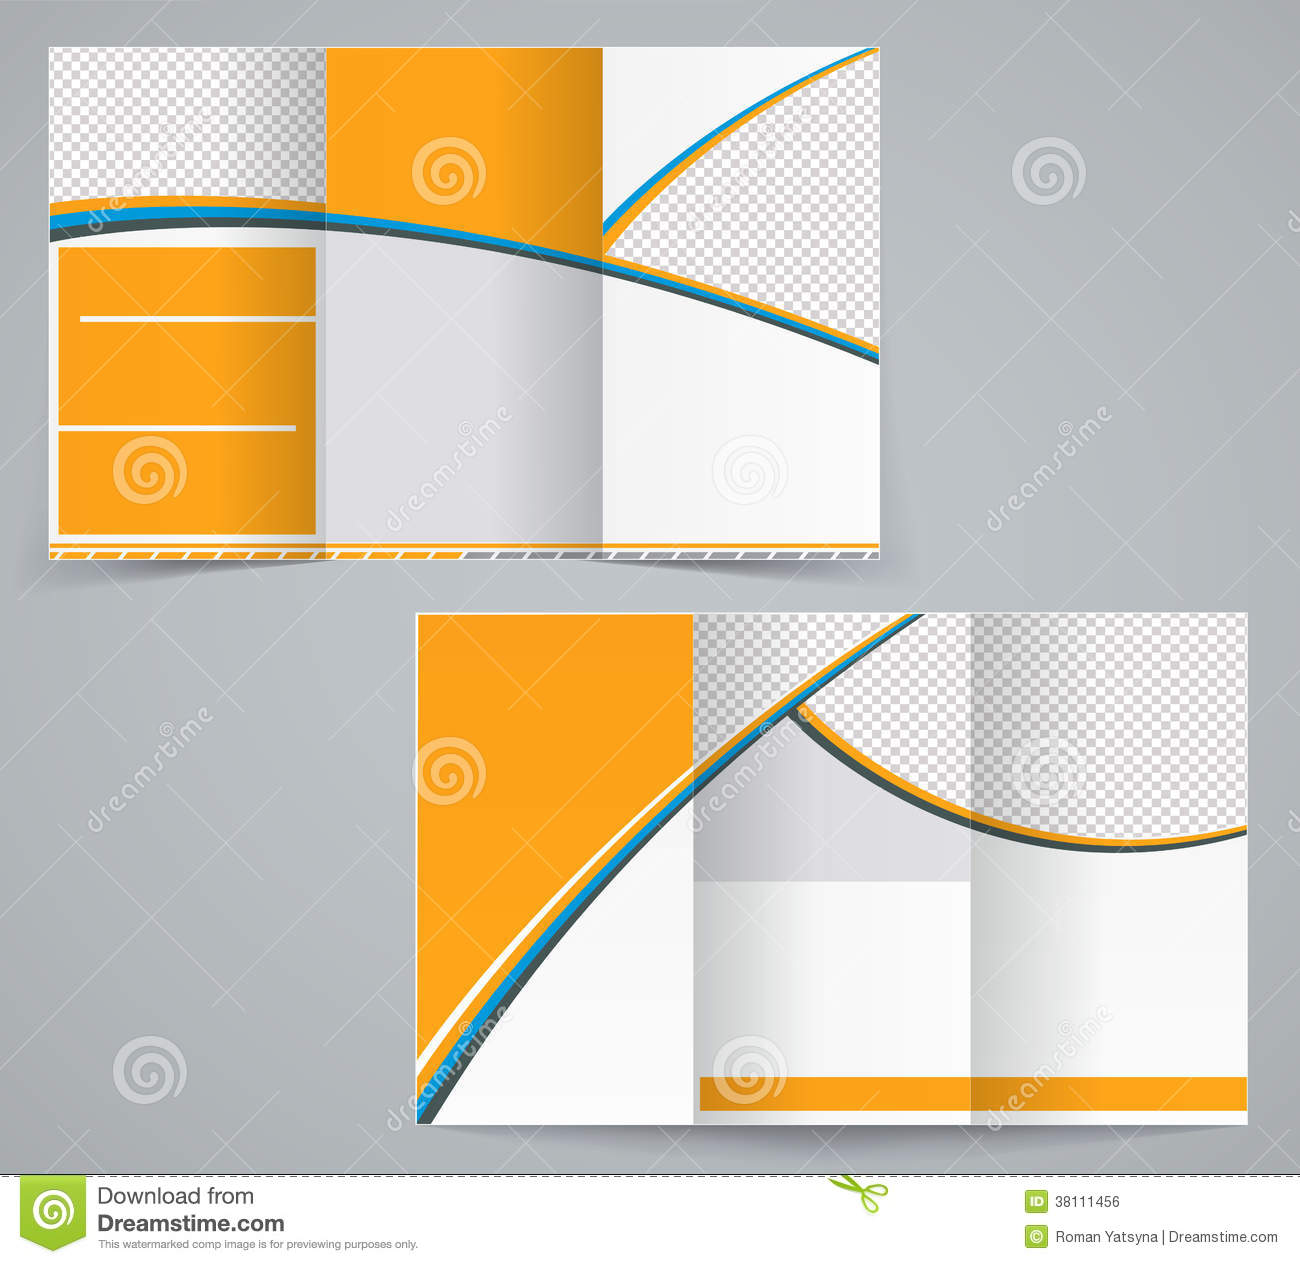 trifold brochure template - tri fold business brochure template royalty free stock